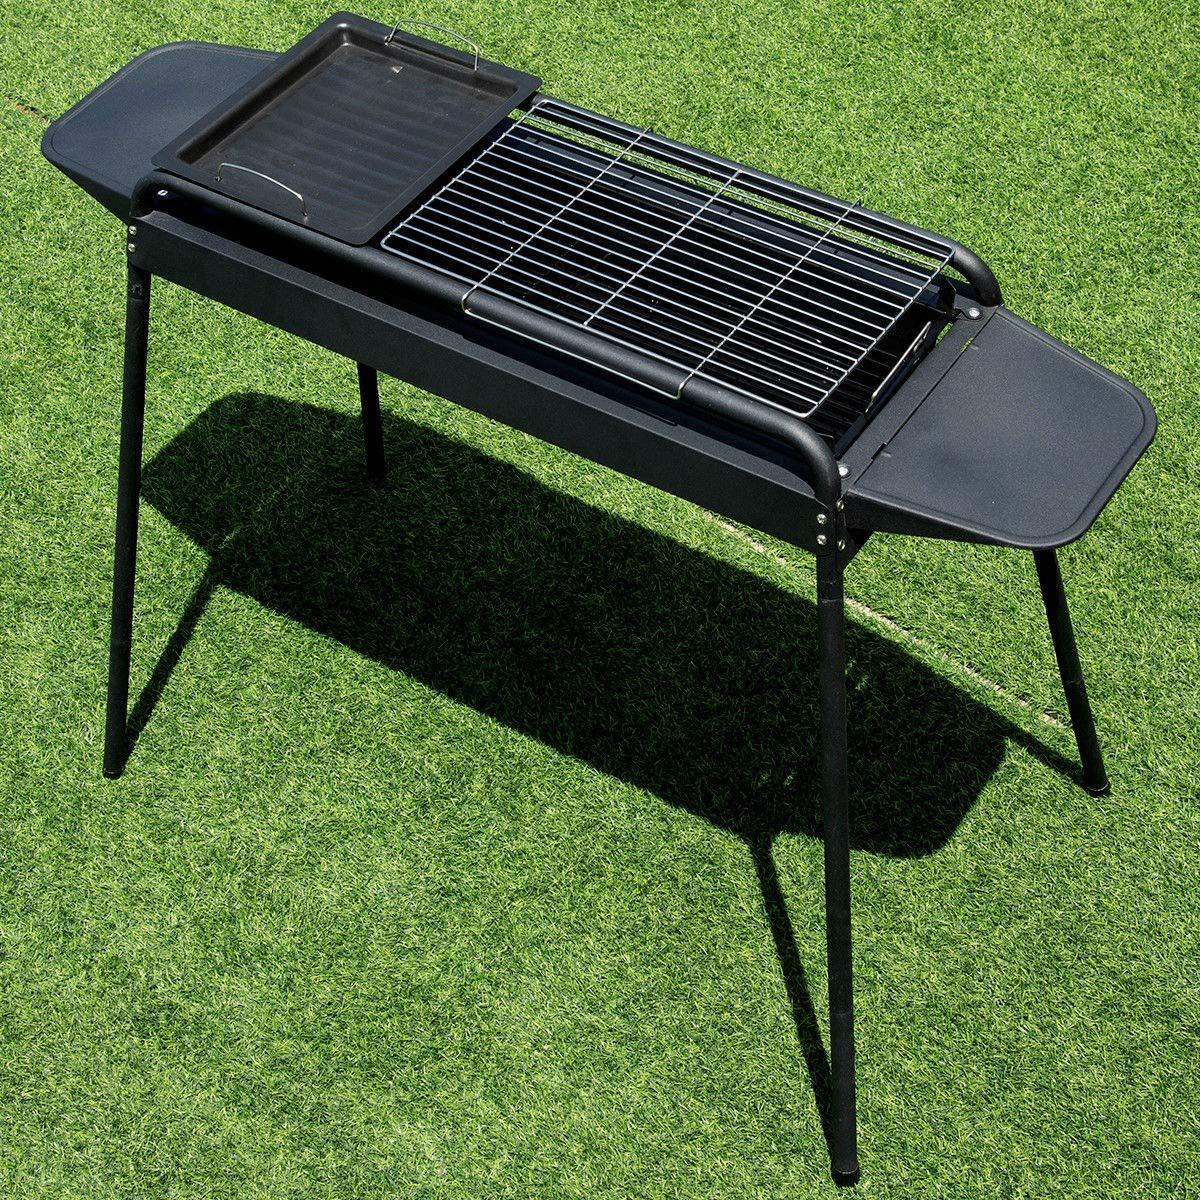 Outdoor Height Adjustable Barbecue Charcoal Grill